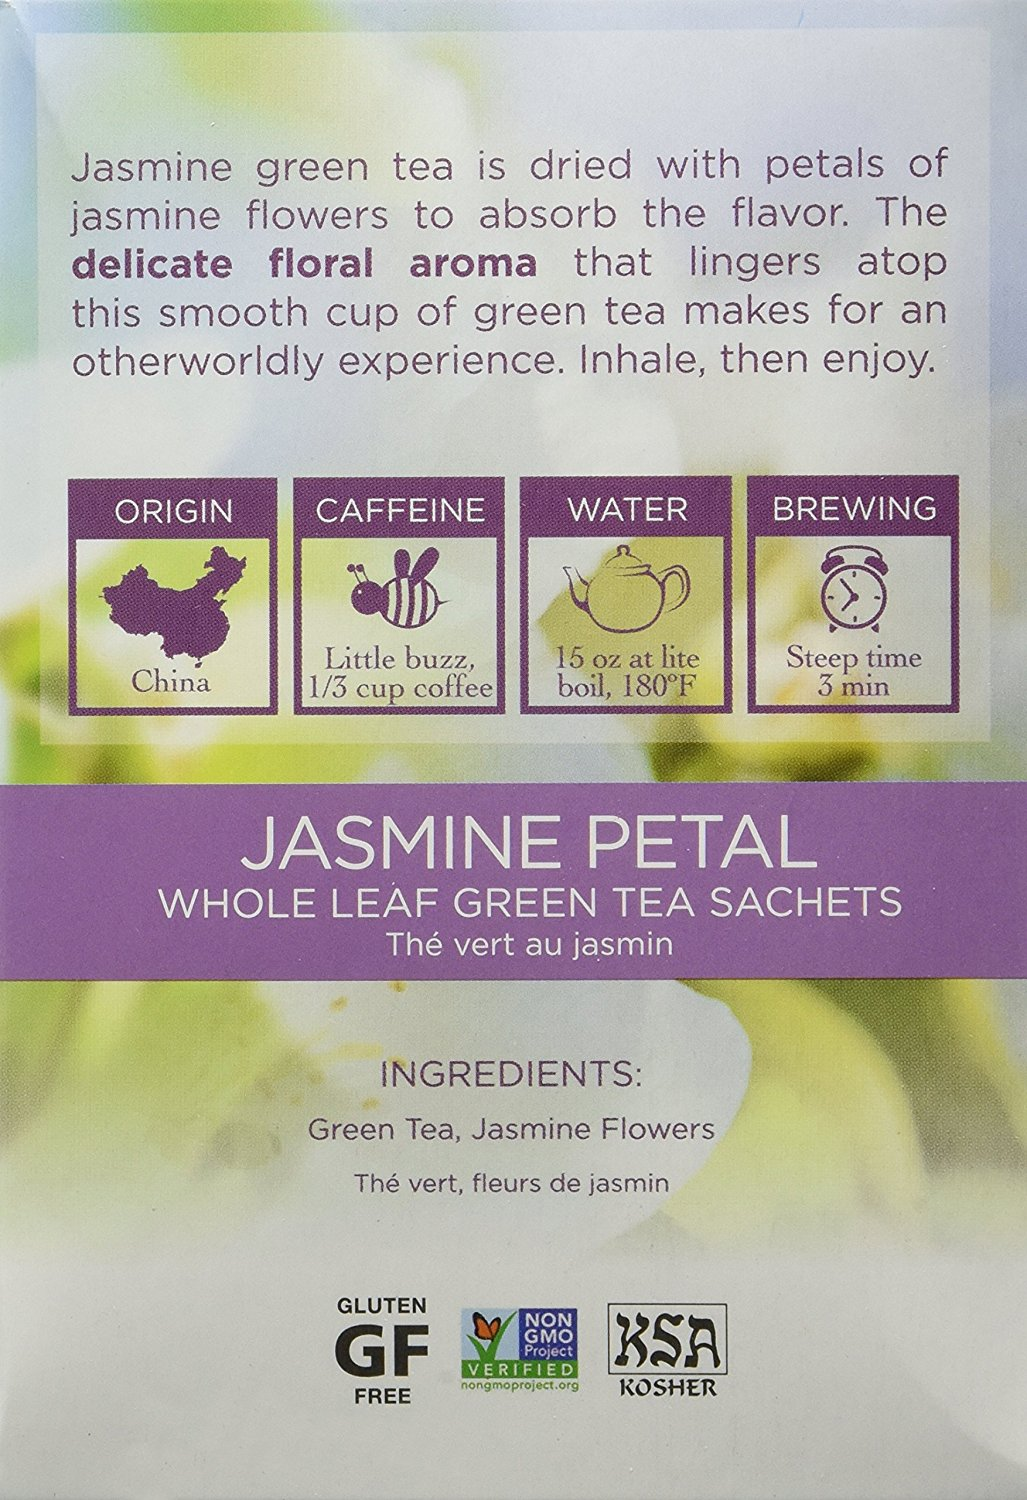 Jasmine Petal is dried with petals of jasmine flowers